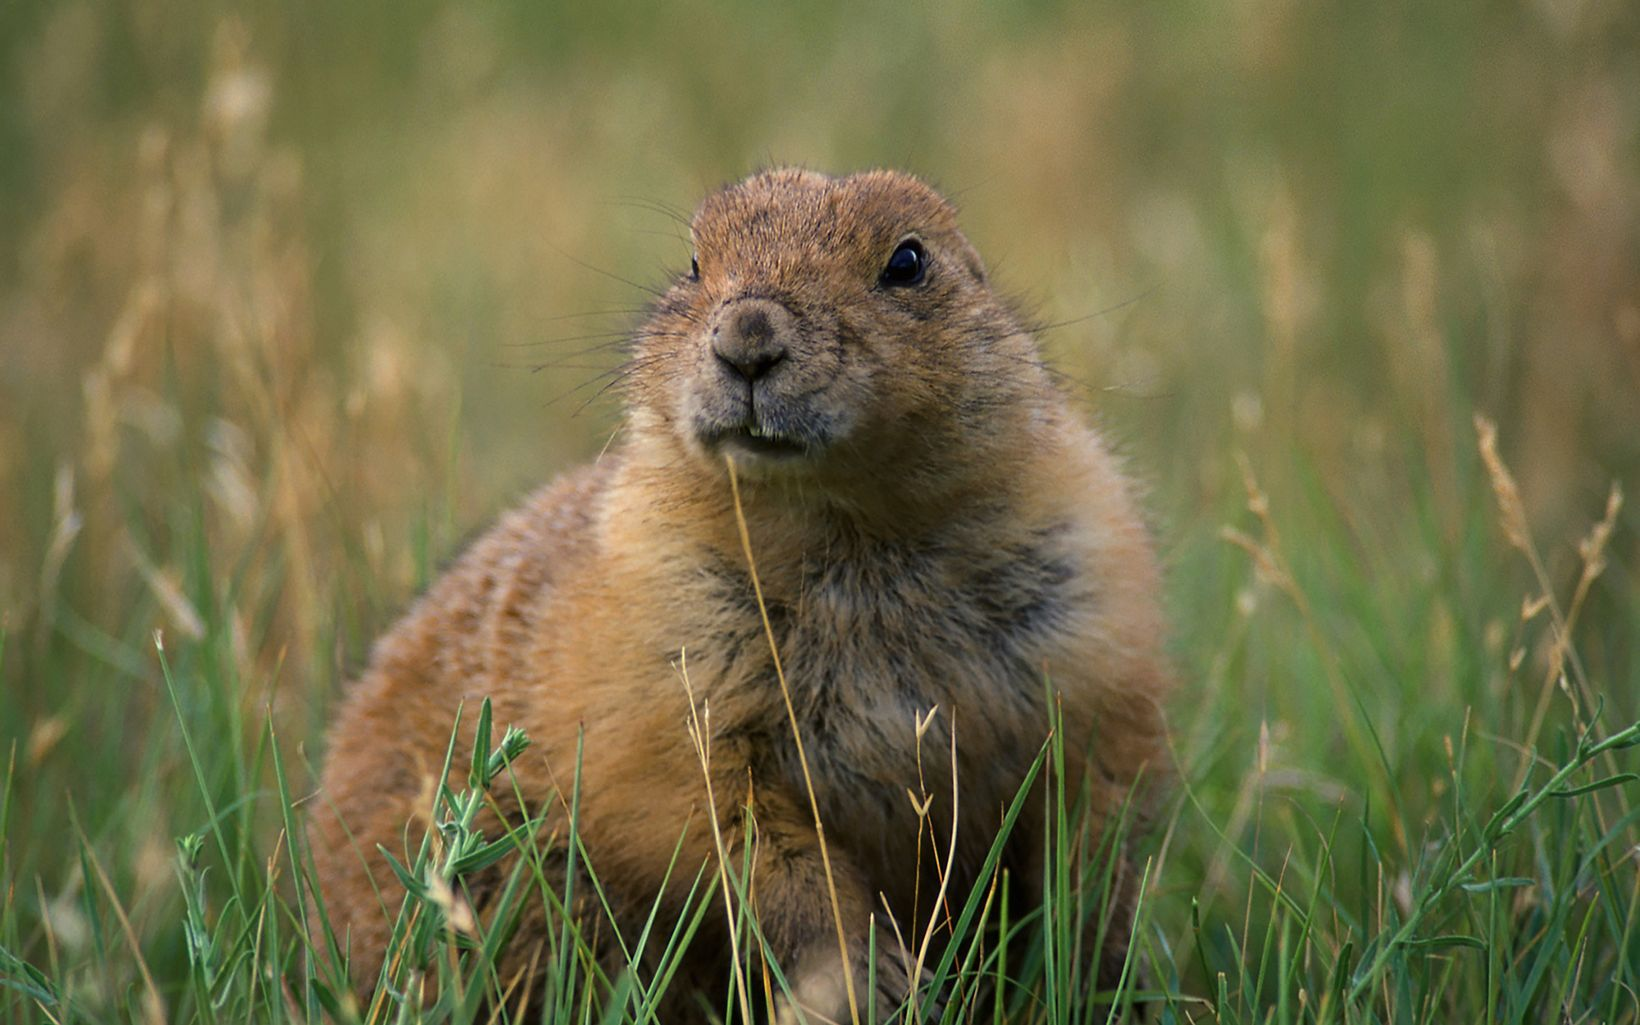 Prairie dog looking angelic in the grass.